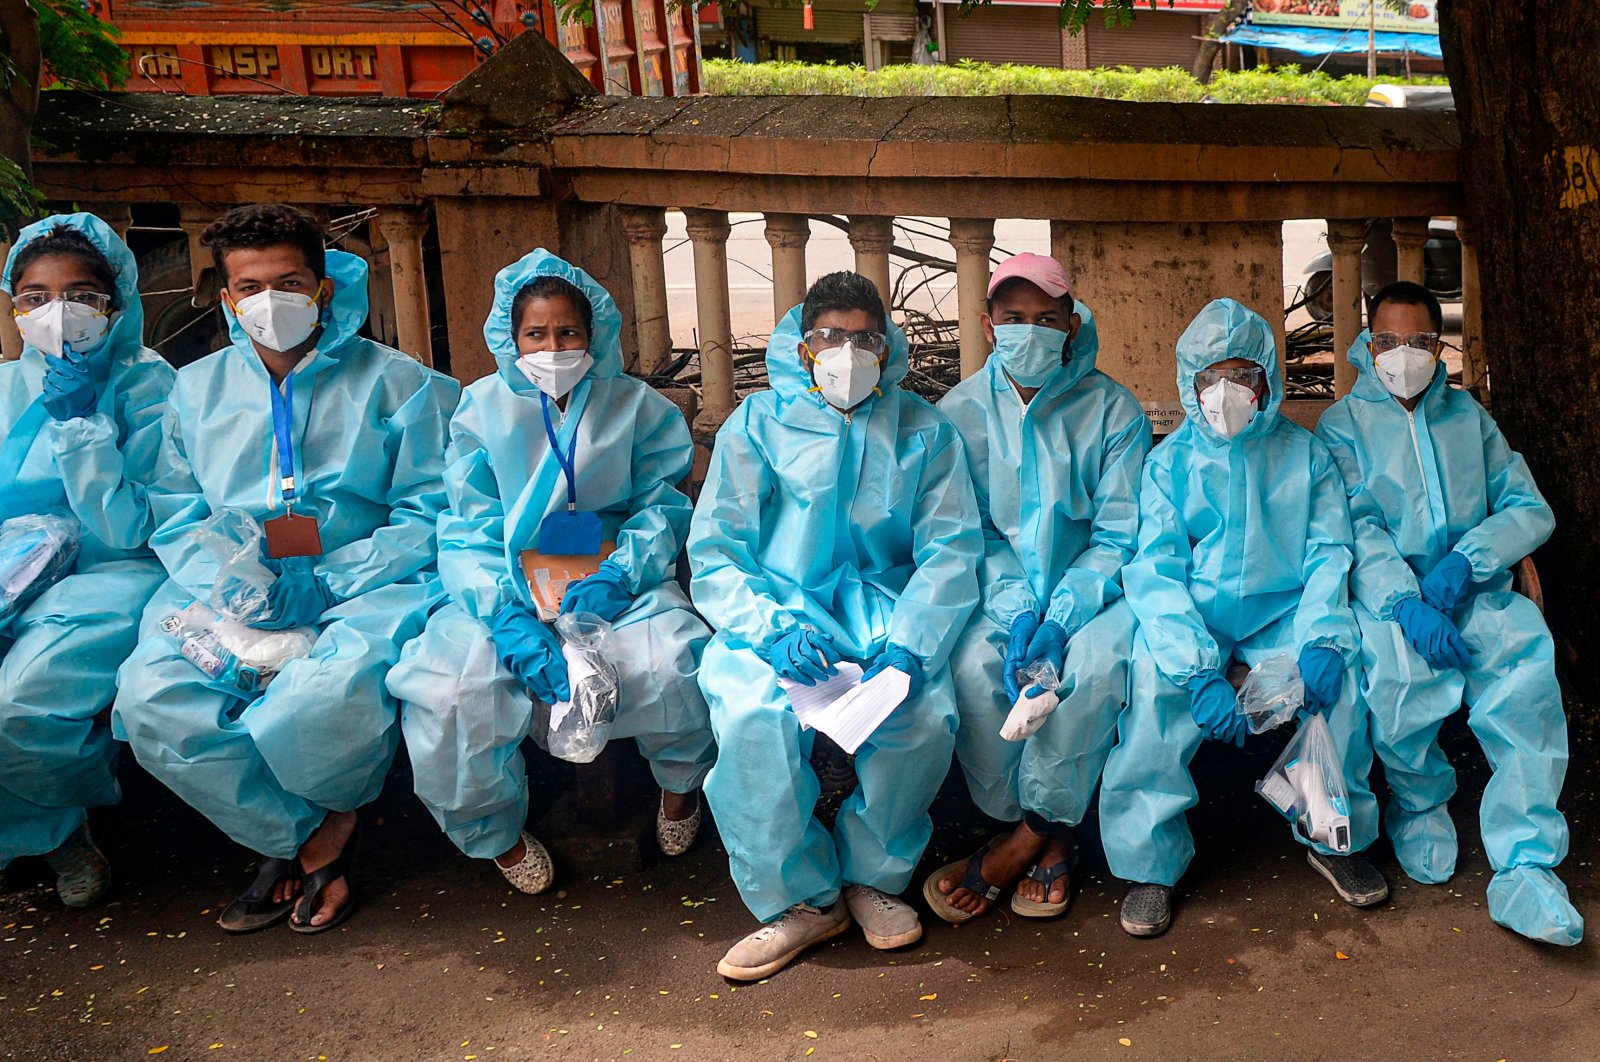 Health workers wait for instructions to conduct a door-to-door medical screening drive for COVID-19 coronavirus, Mumbai. July 20, 2020. (AP Photo)